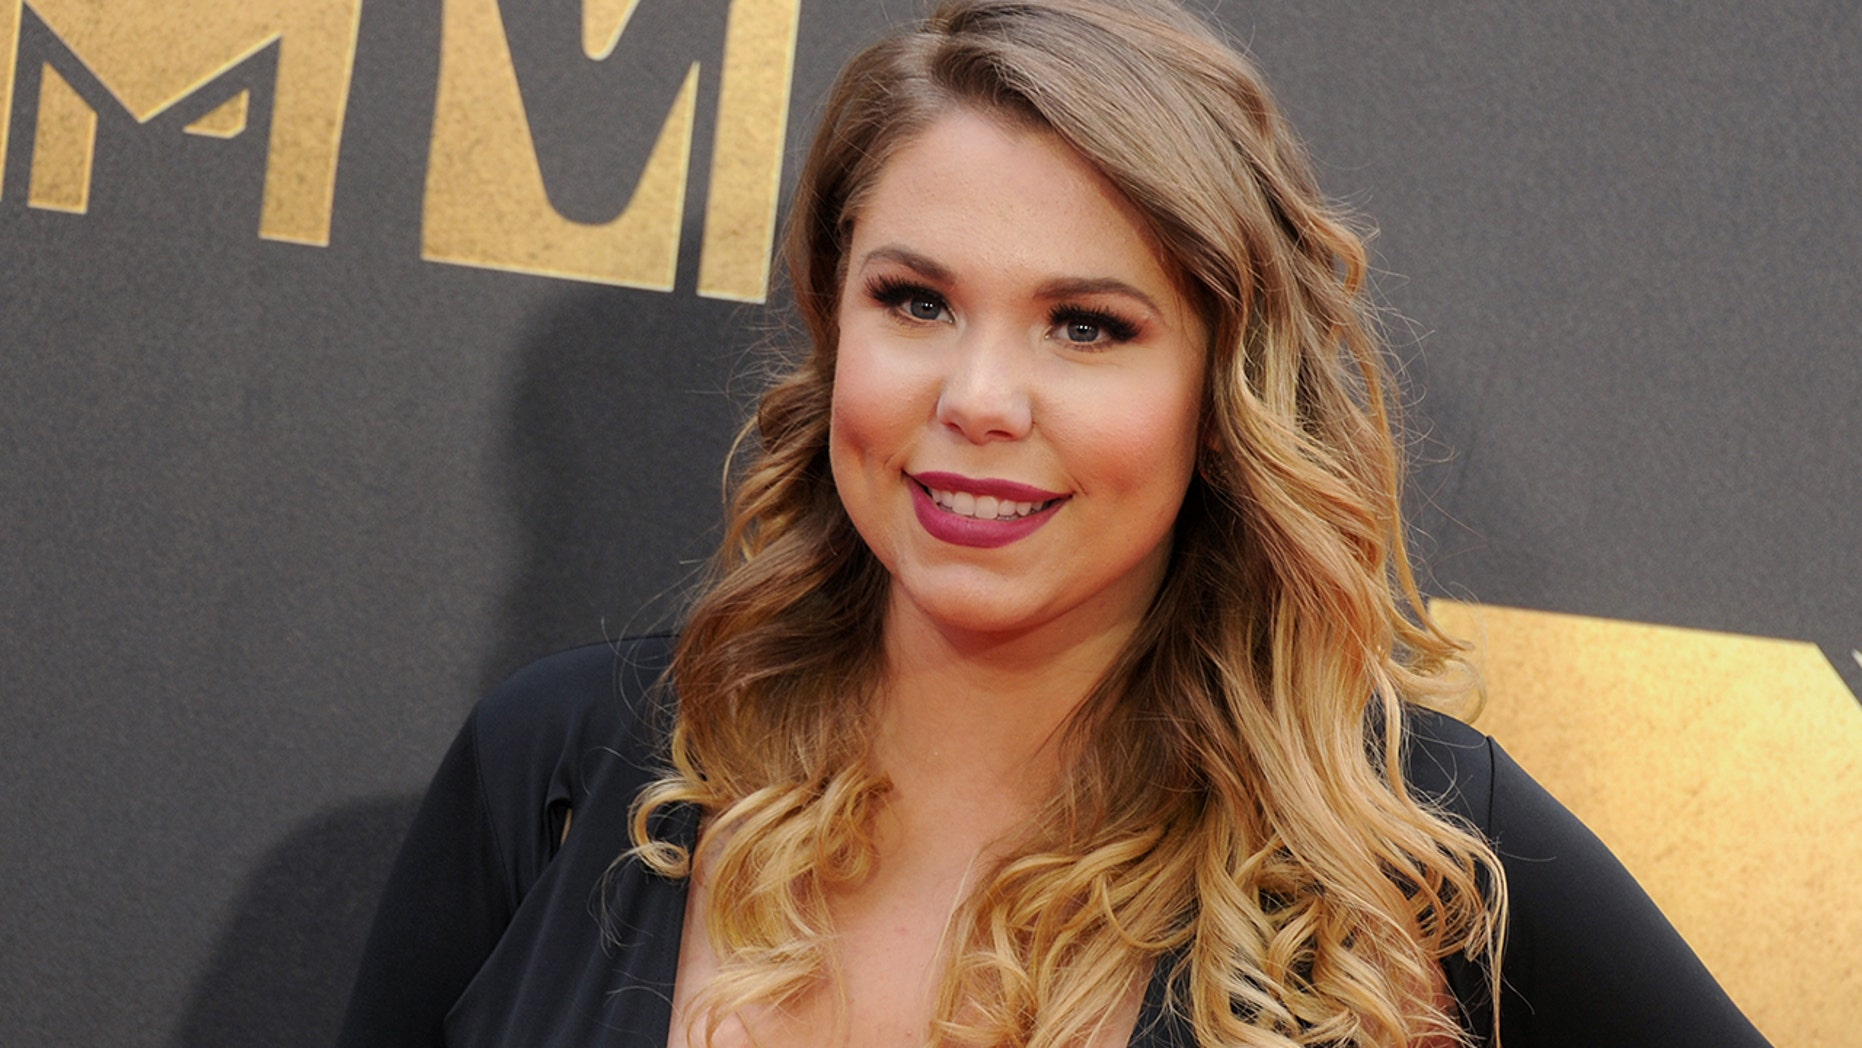 Kailyn Lowry openly bashed MTV for its treatment of her in the latest season of 'Teen Mom 2.'